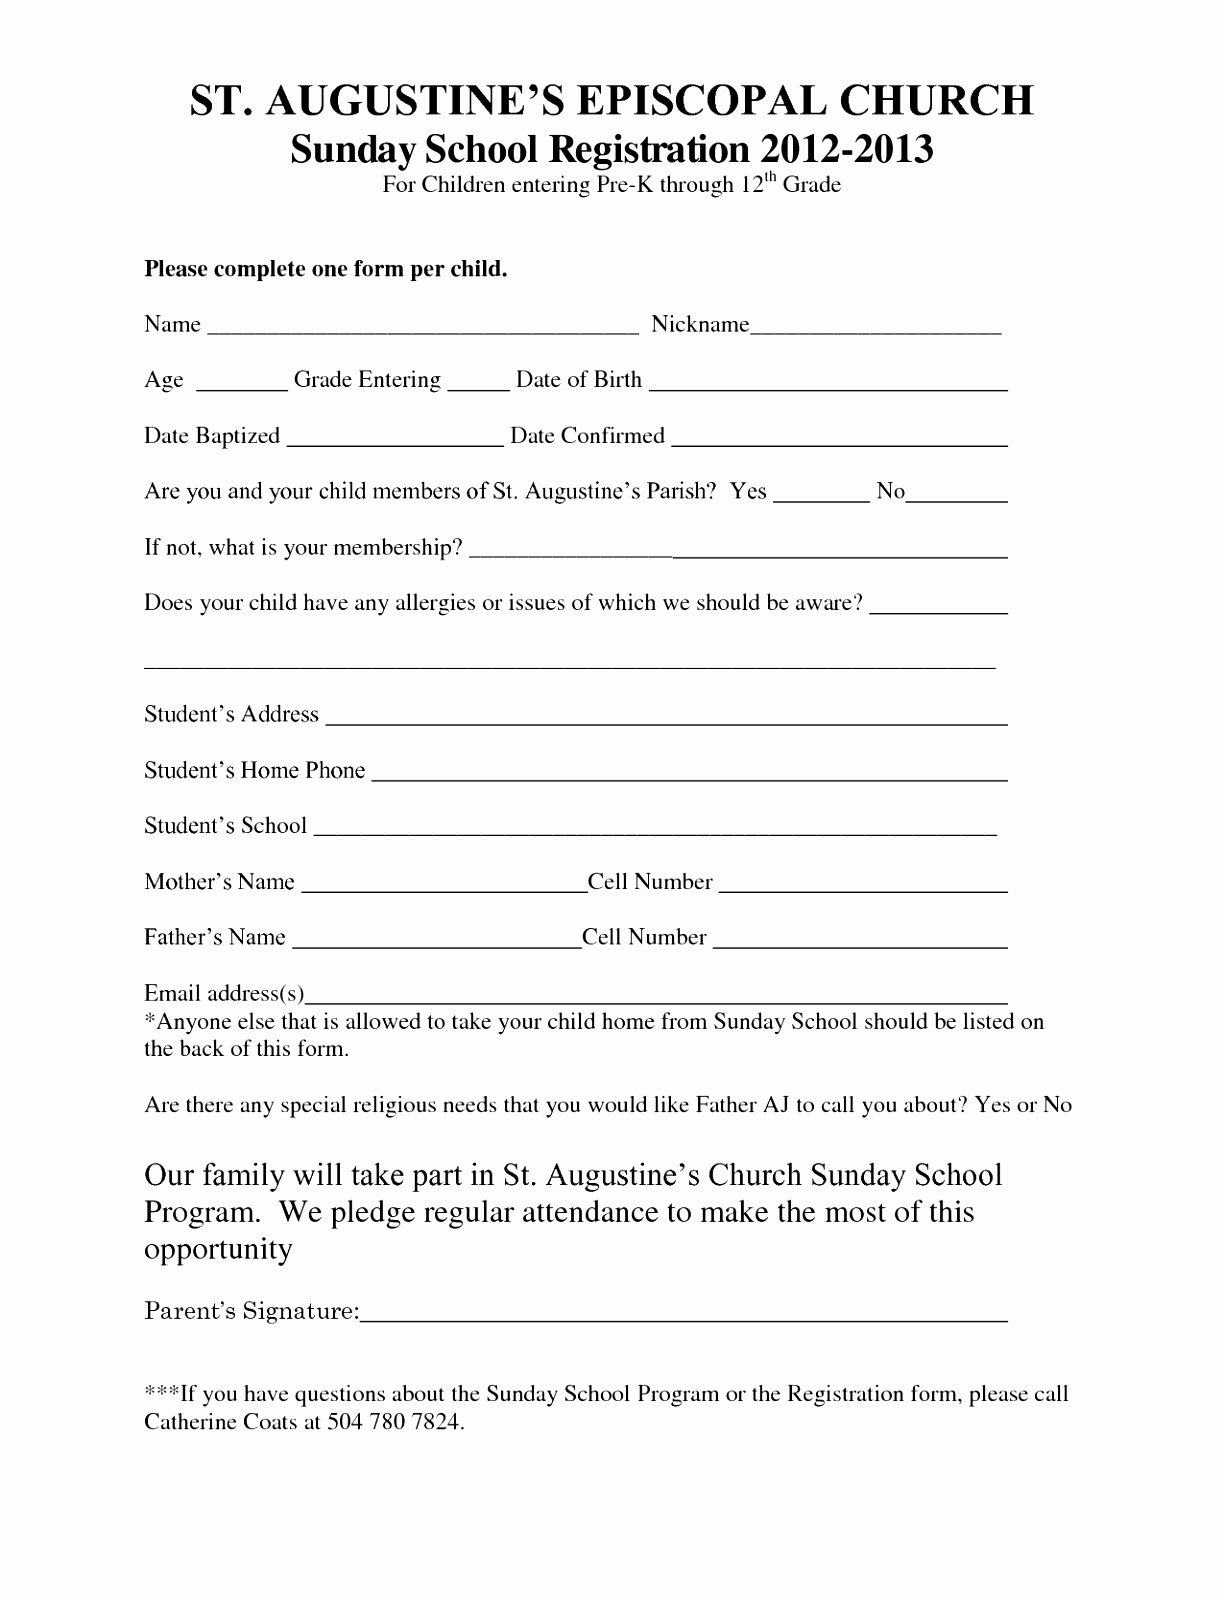 photo about Printable Registration Form Template titled Printable Registration type Template Peterainsworth